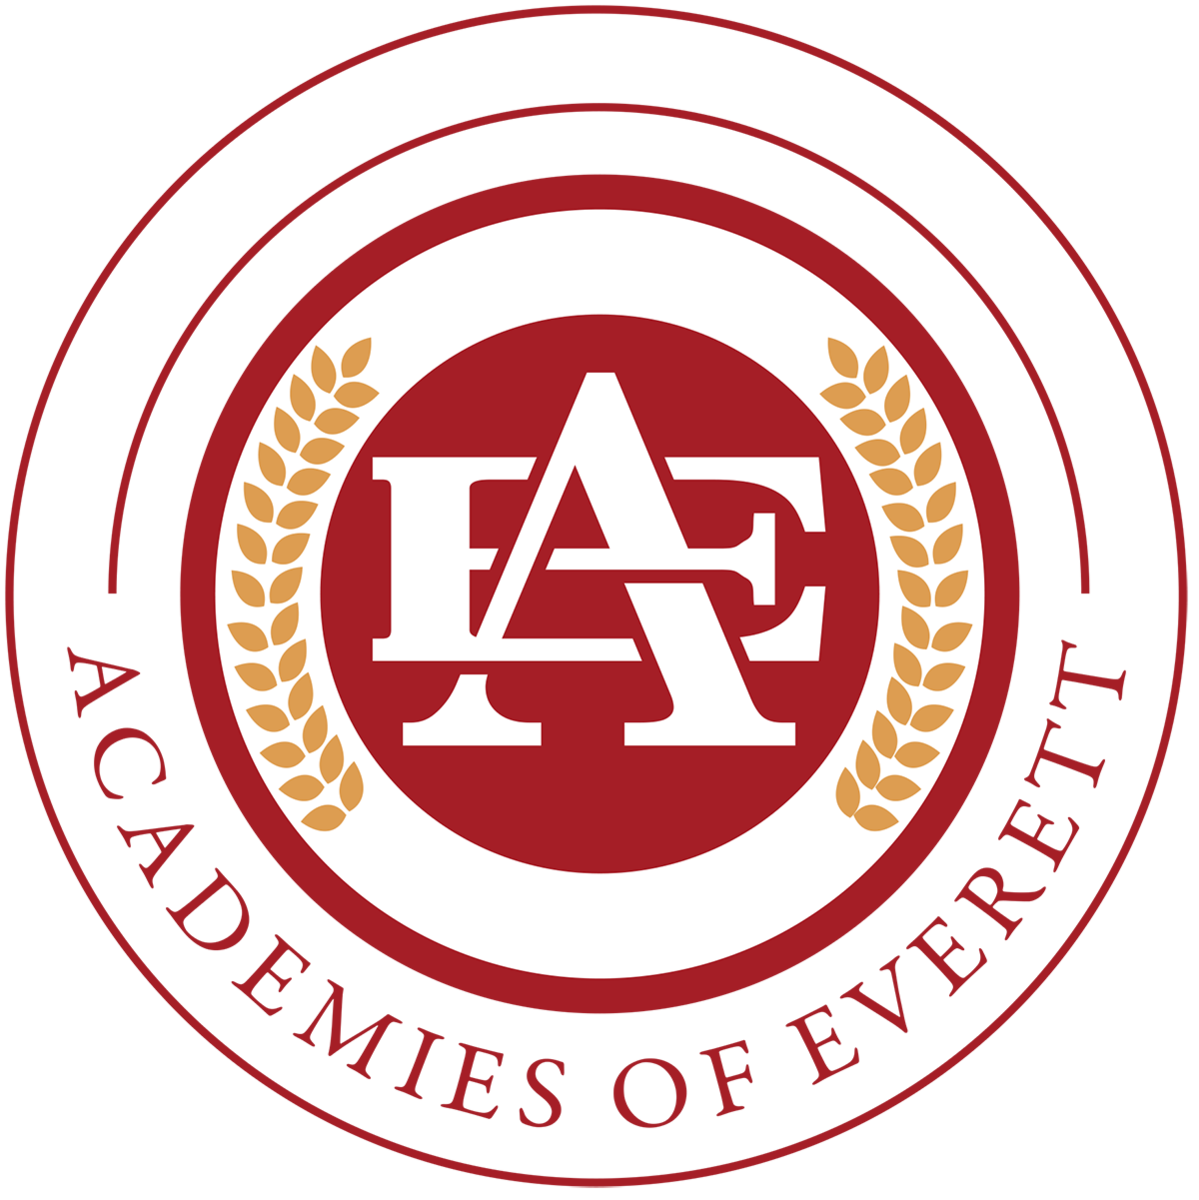 The Academies of Everett Master Logo